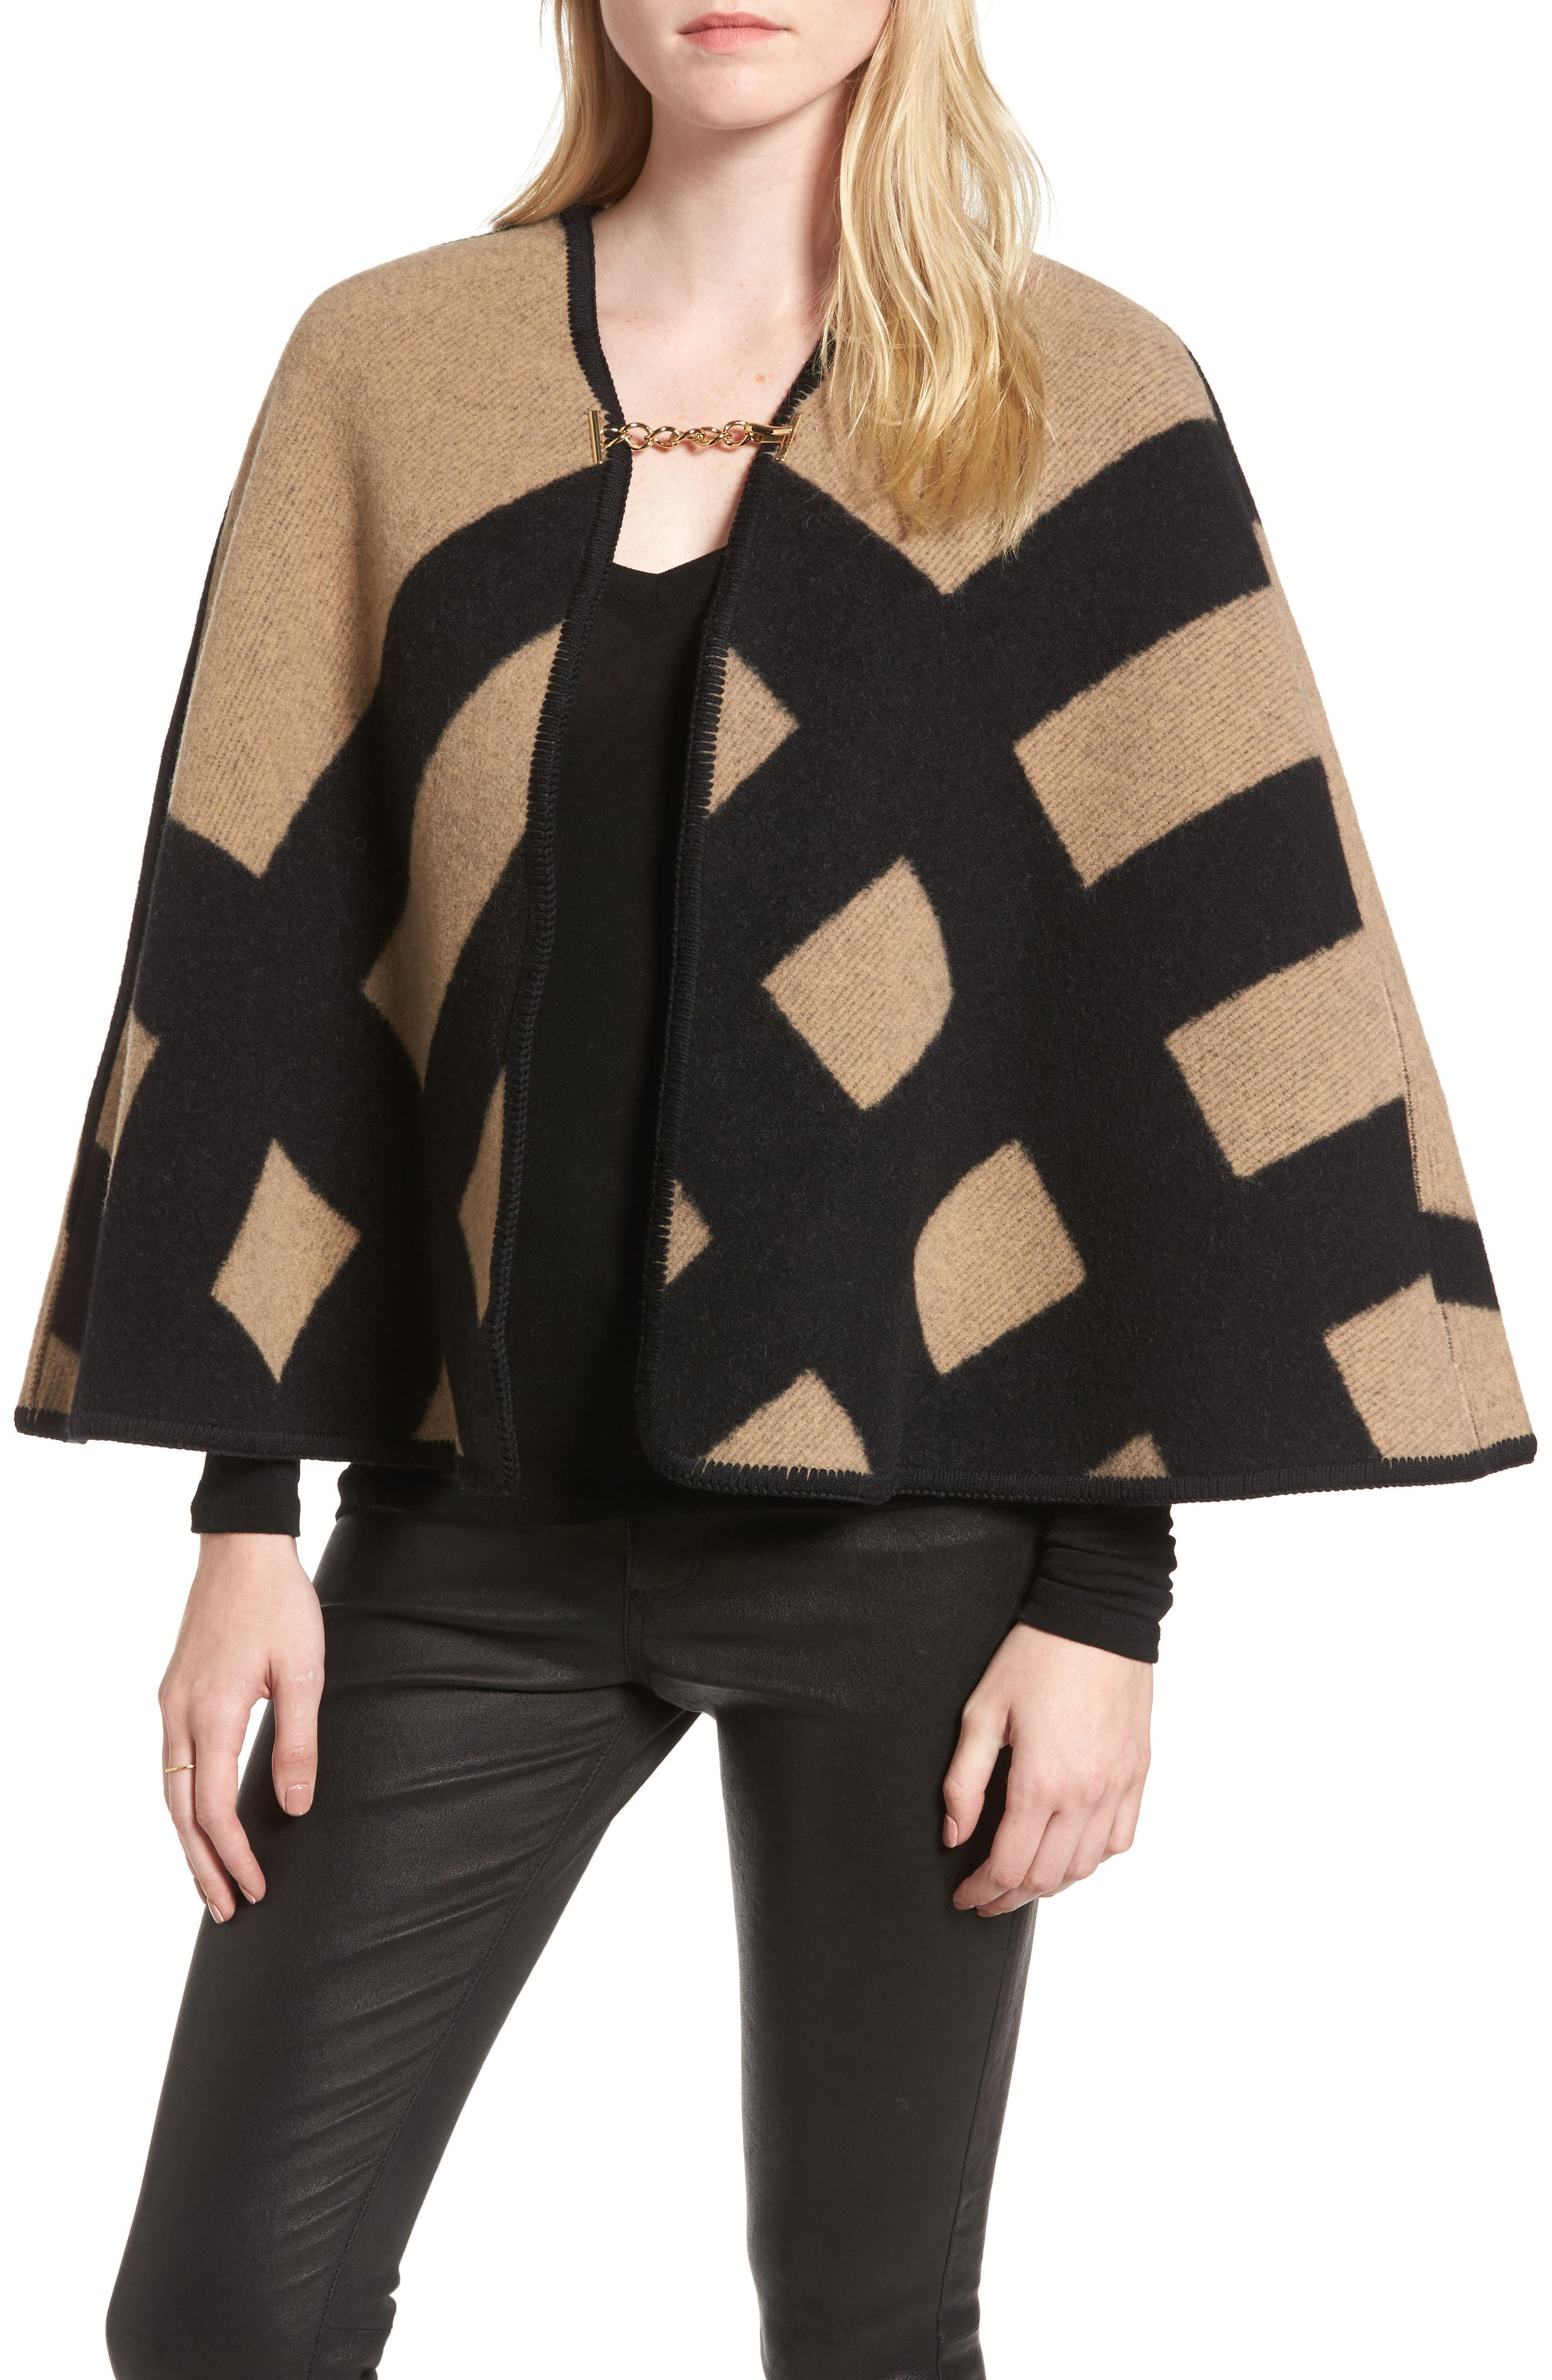 Blanket Check Wool & Cashmere Poncho,                             Main thumbnail 1, color,                             Camel/ Black